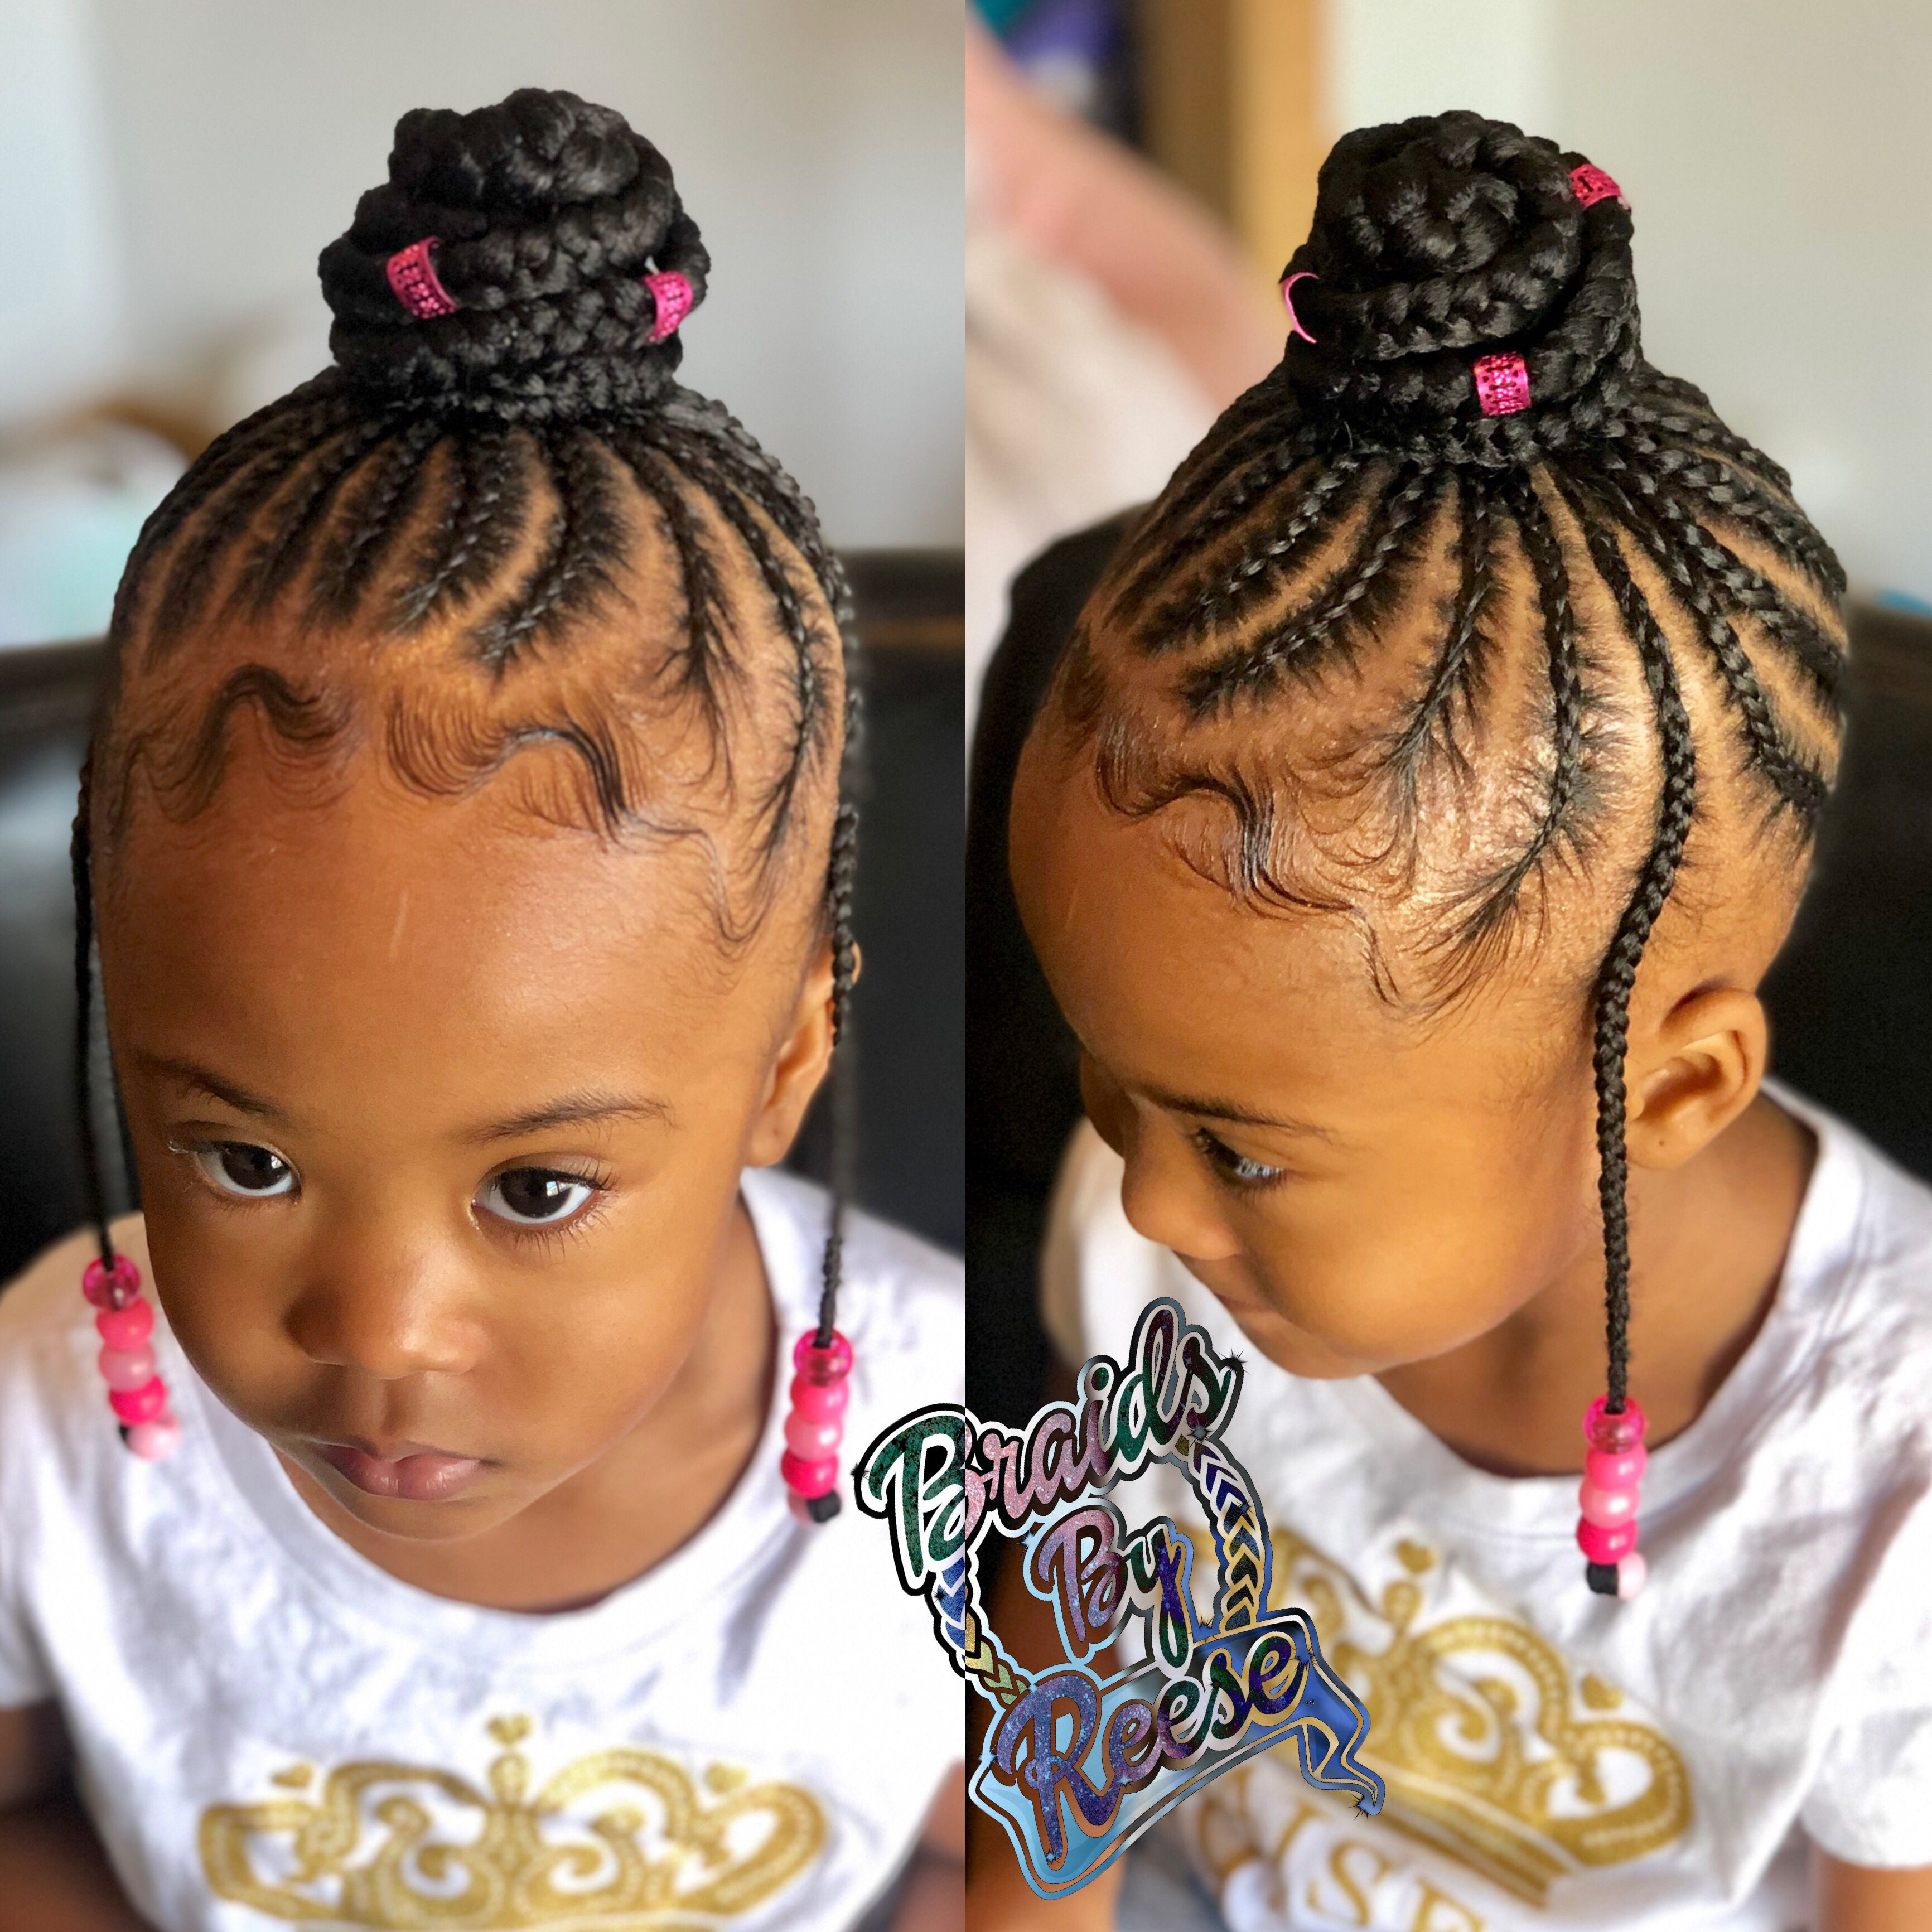 pin by kendra coleman on braids in 2019 | kids braided